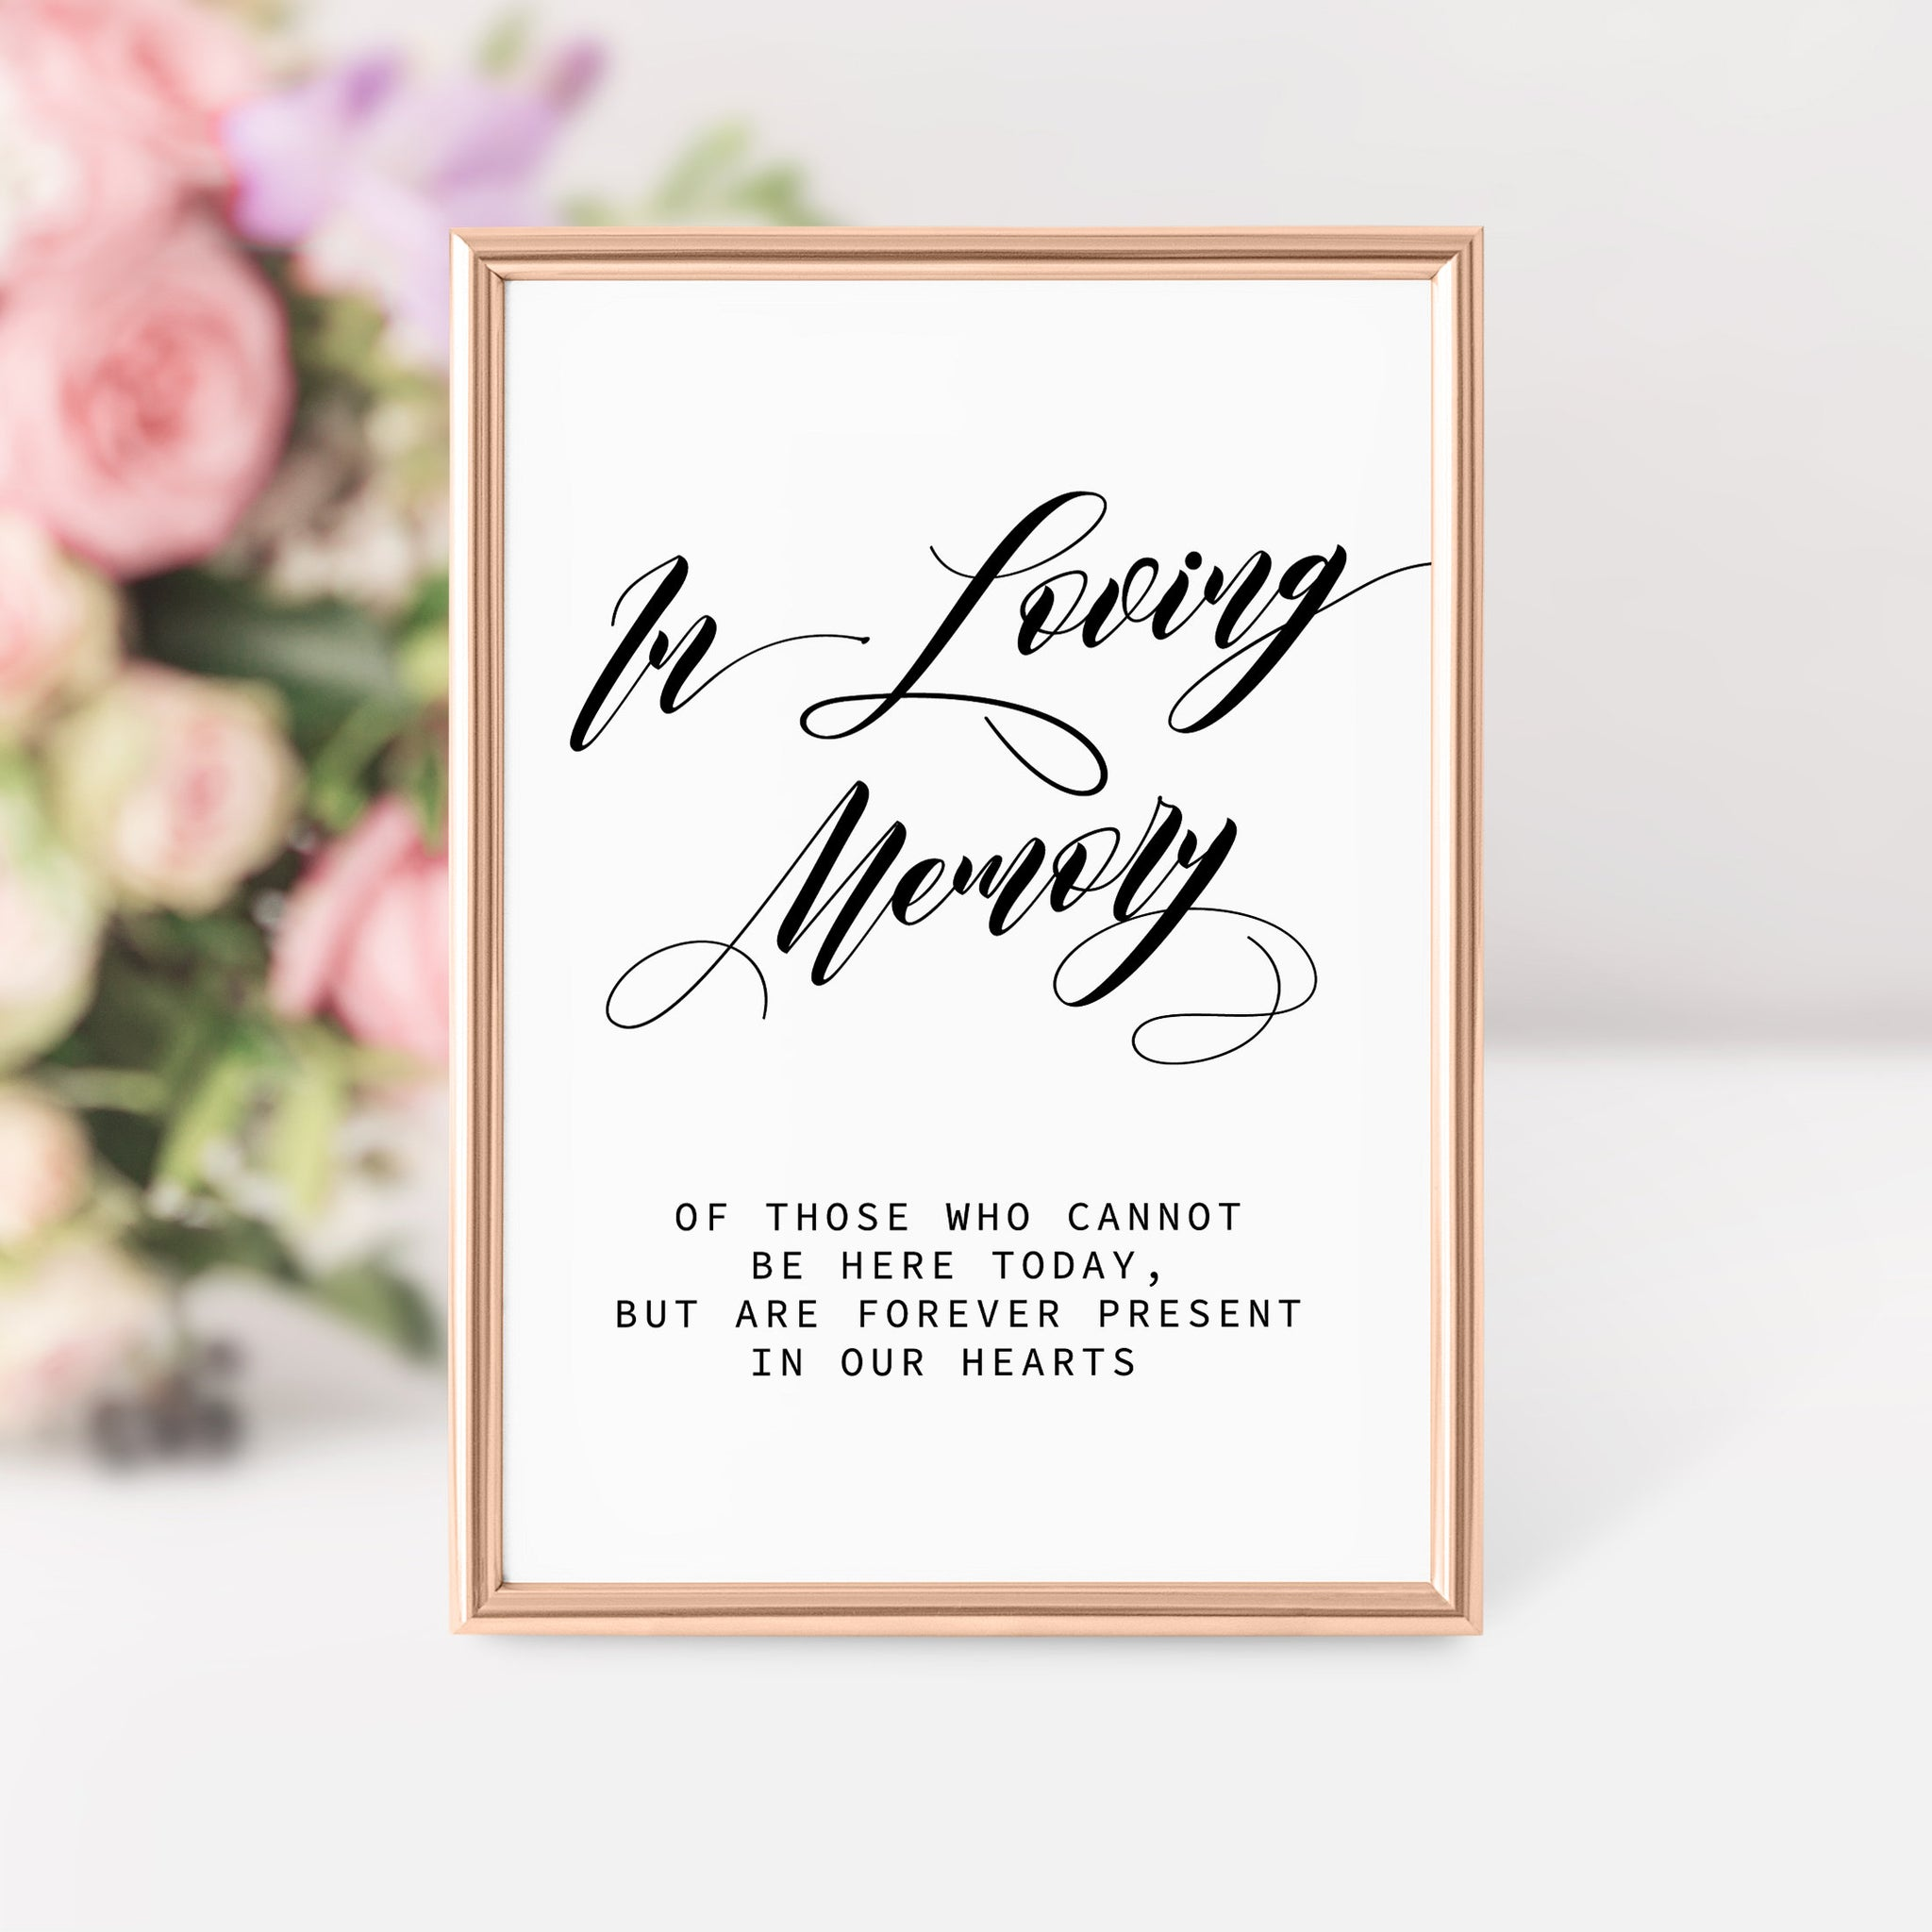 Wedding Memorial Sign, In Loving Memory Wedding Sign Printable, Memorial Table Sign, Remembrance Sign Wedding, INSTANT DOWNLOAD - SFB100 - @PlumPolkaDot